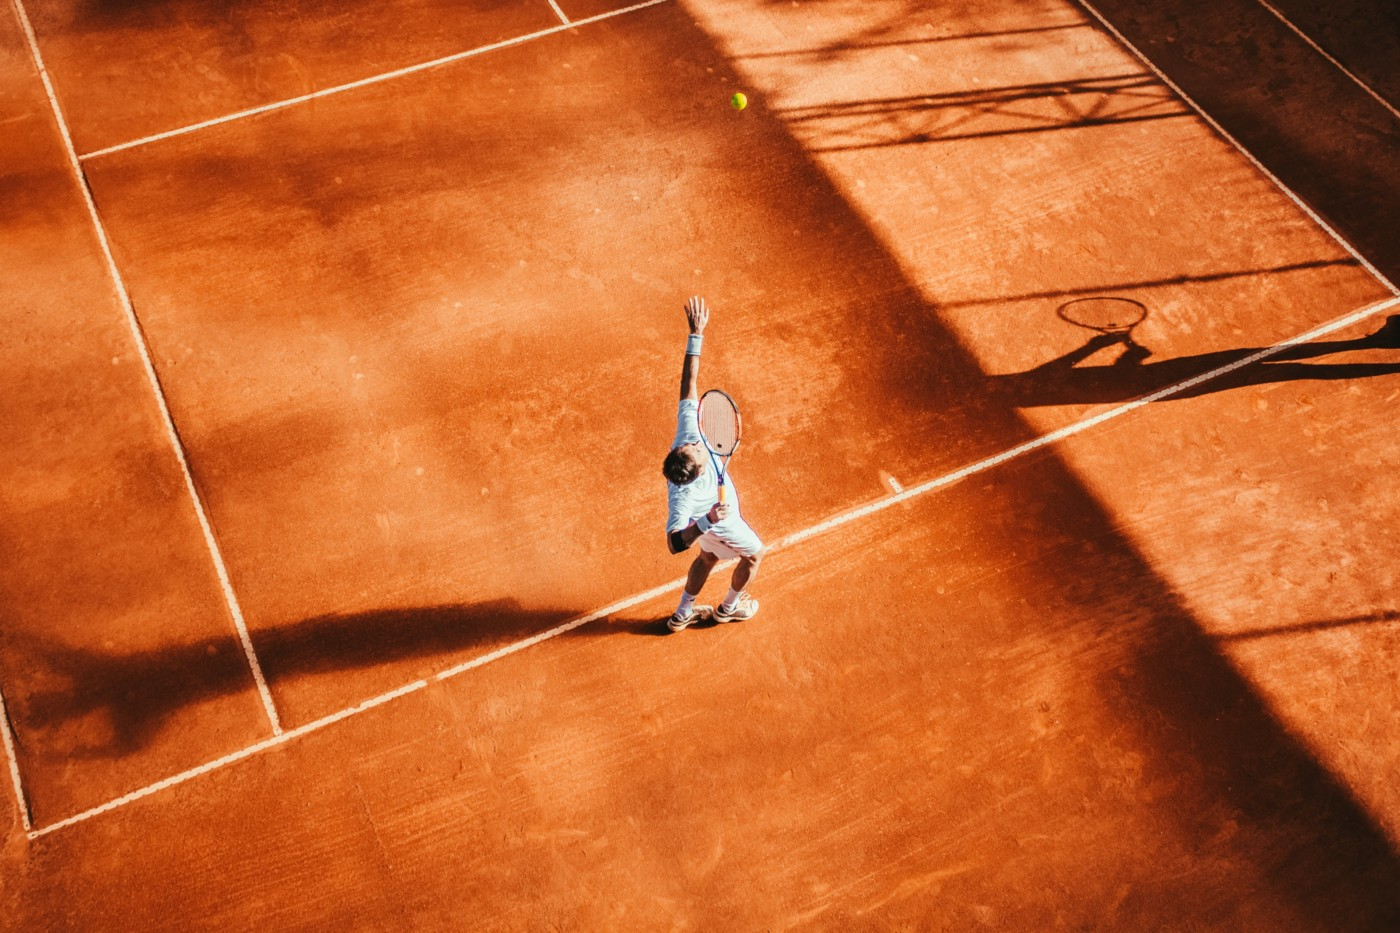 A person playing tennis on an orange court.